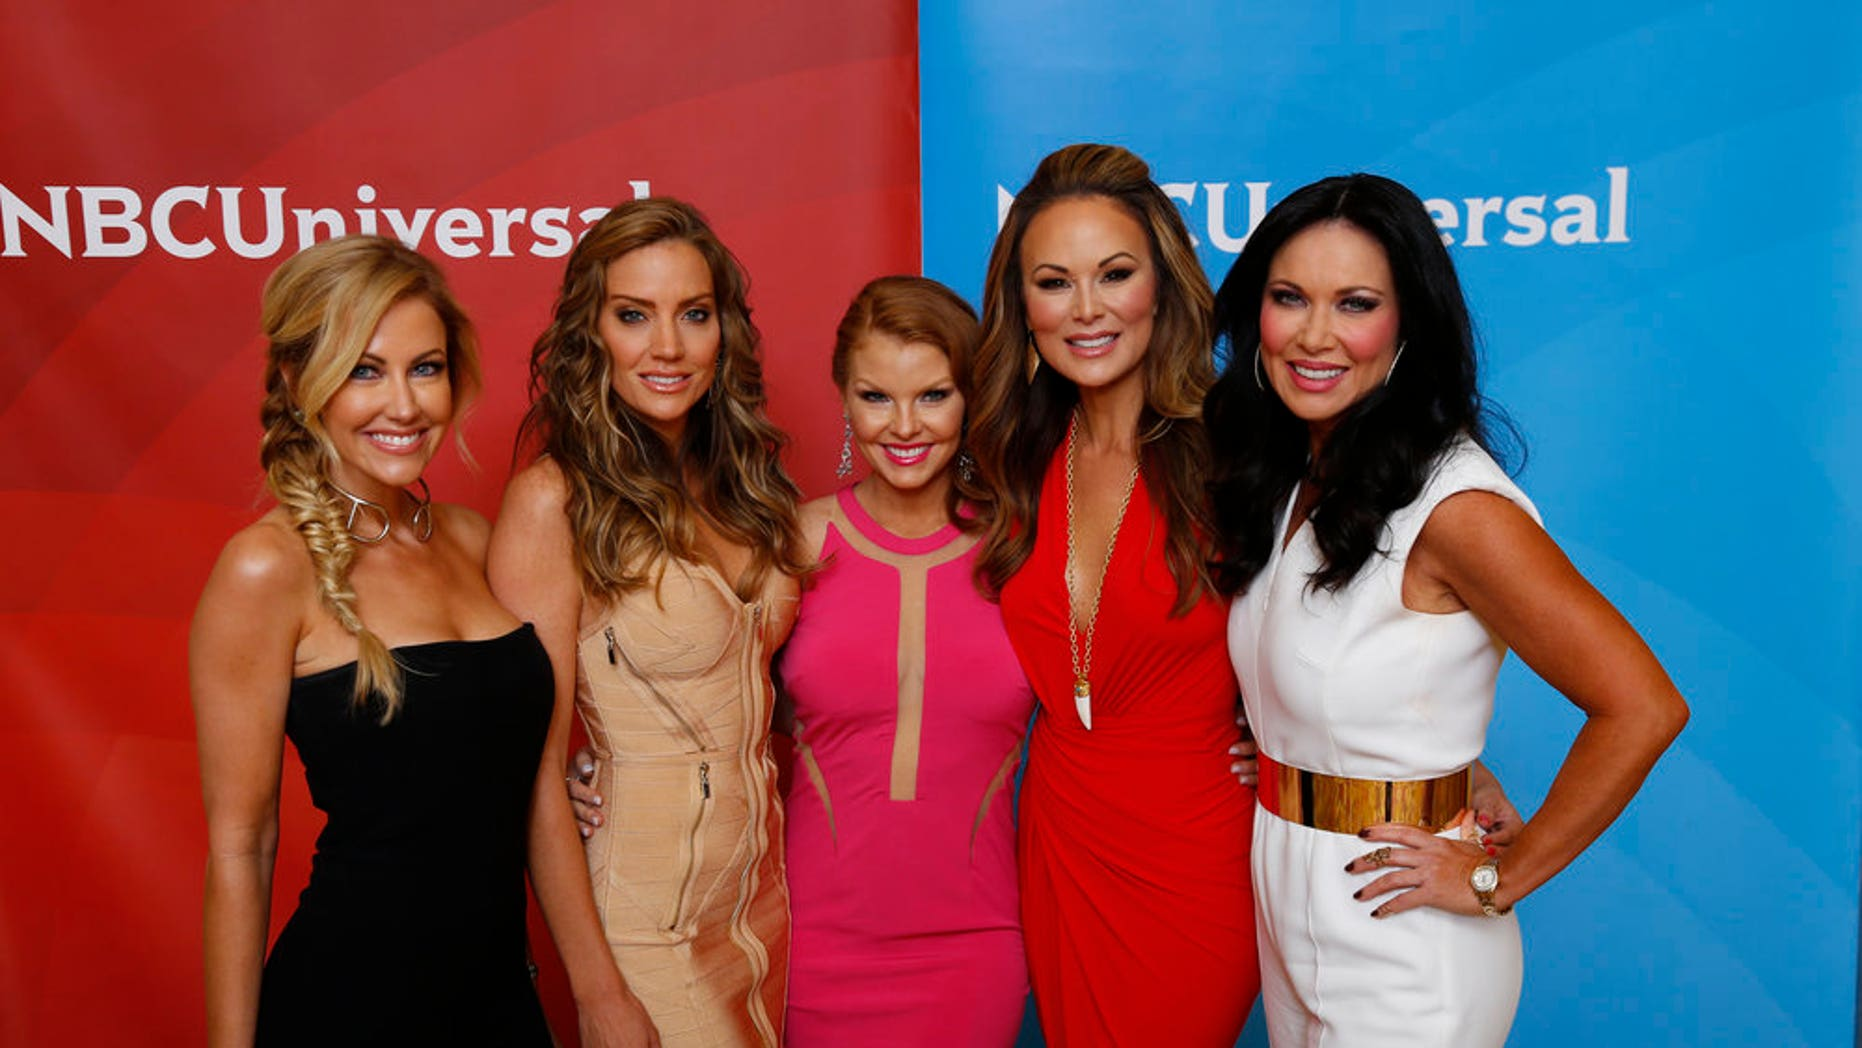 "NBCUNIVERSAL EVENTS -- NBCUniversal Summer Press Day, April 1, 2016 -- Bravo's ""The Real Housewives of Dallas"" -- Pictured: (l-r) Stephanie Hollman, Cary Deuber, Brandi Redmond, Tiffany Hendra, LeeAnne Locken -- (Photo by: Paul Drinkwater/NBCUniversal)"